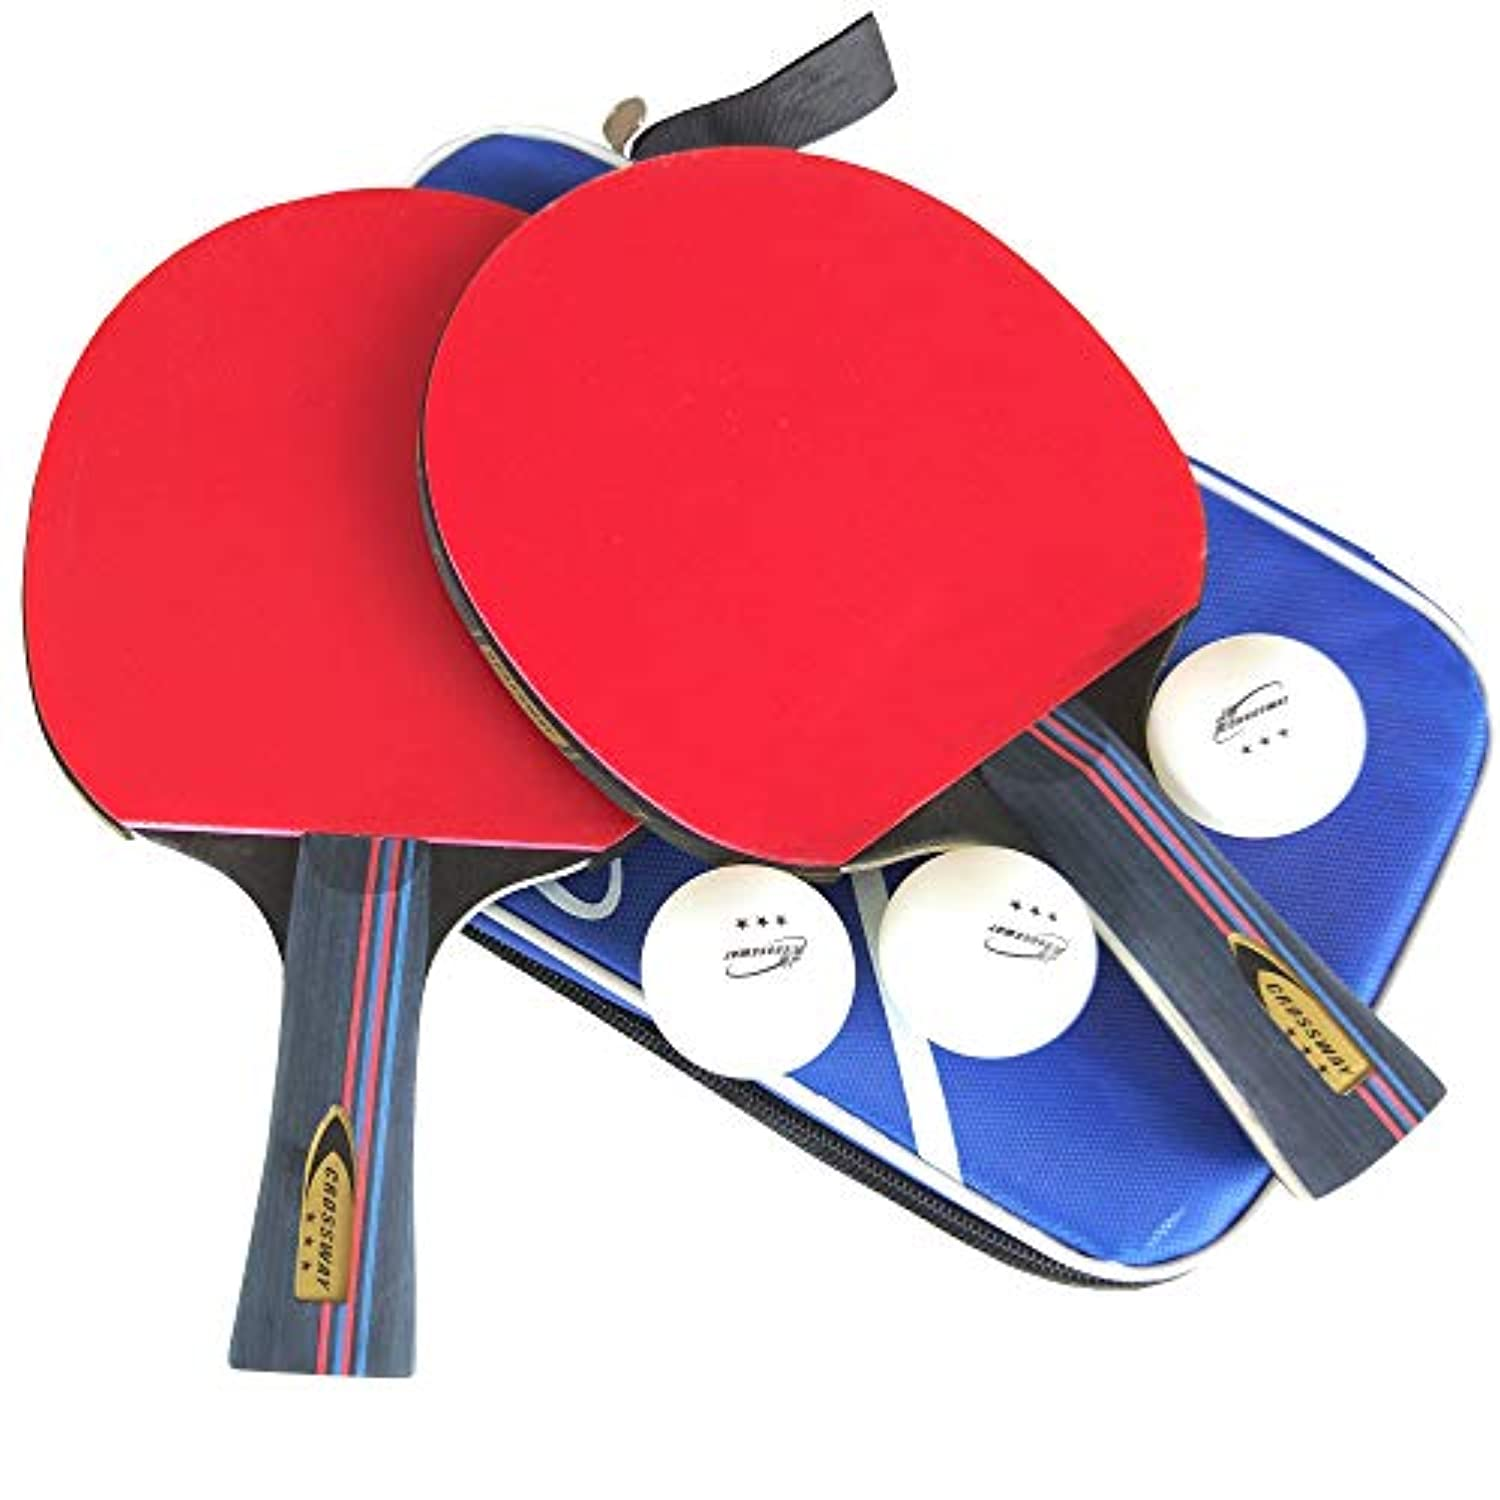 ahomie 2パックテーブルテニスセット、Ping Pong Paddles Rackets withソフトスポンジゴム、3 Balls and Carry Bag Included、3つ星